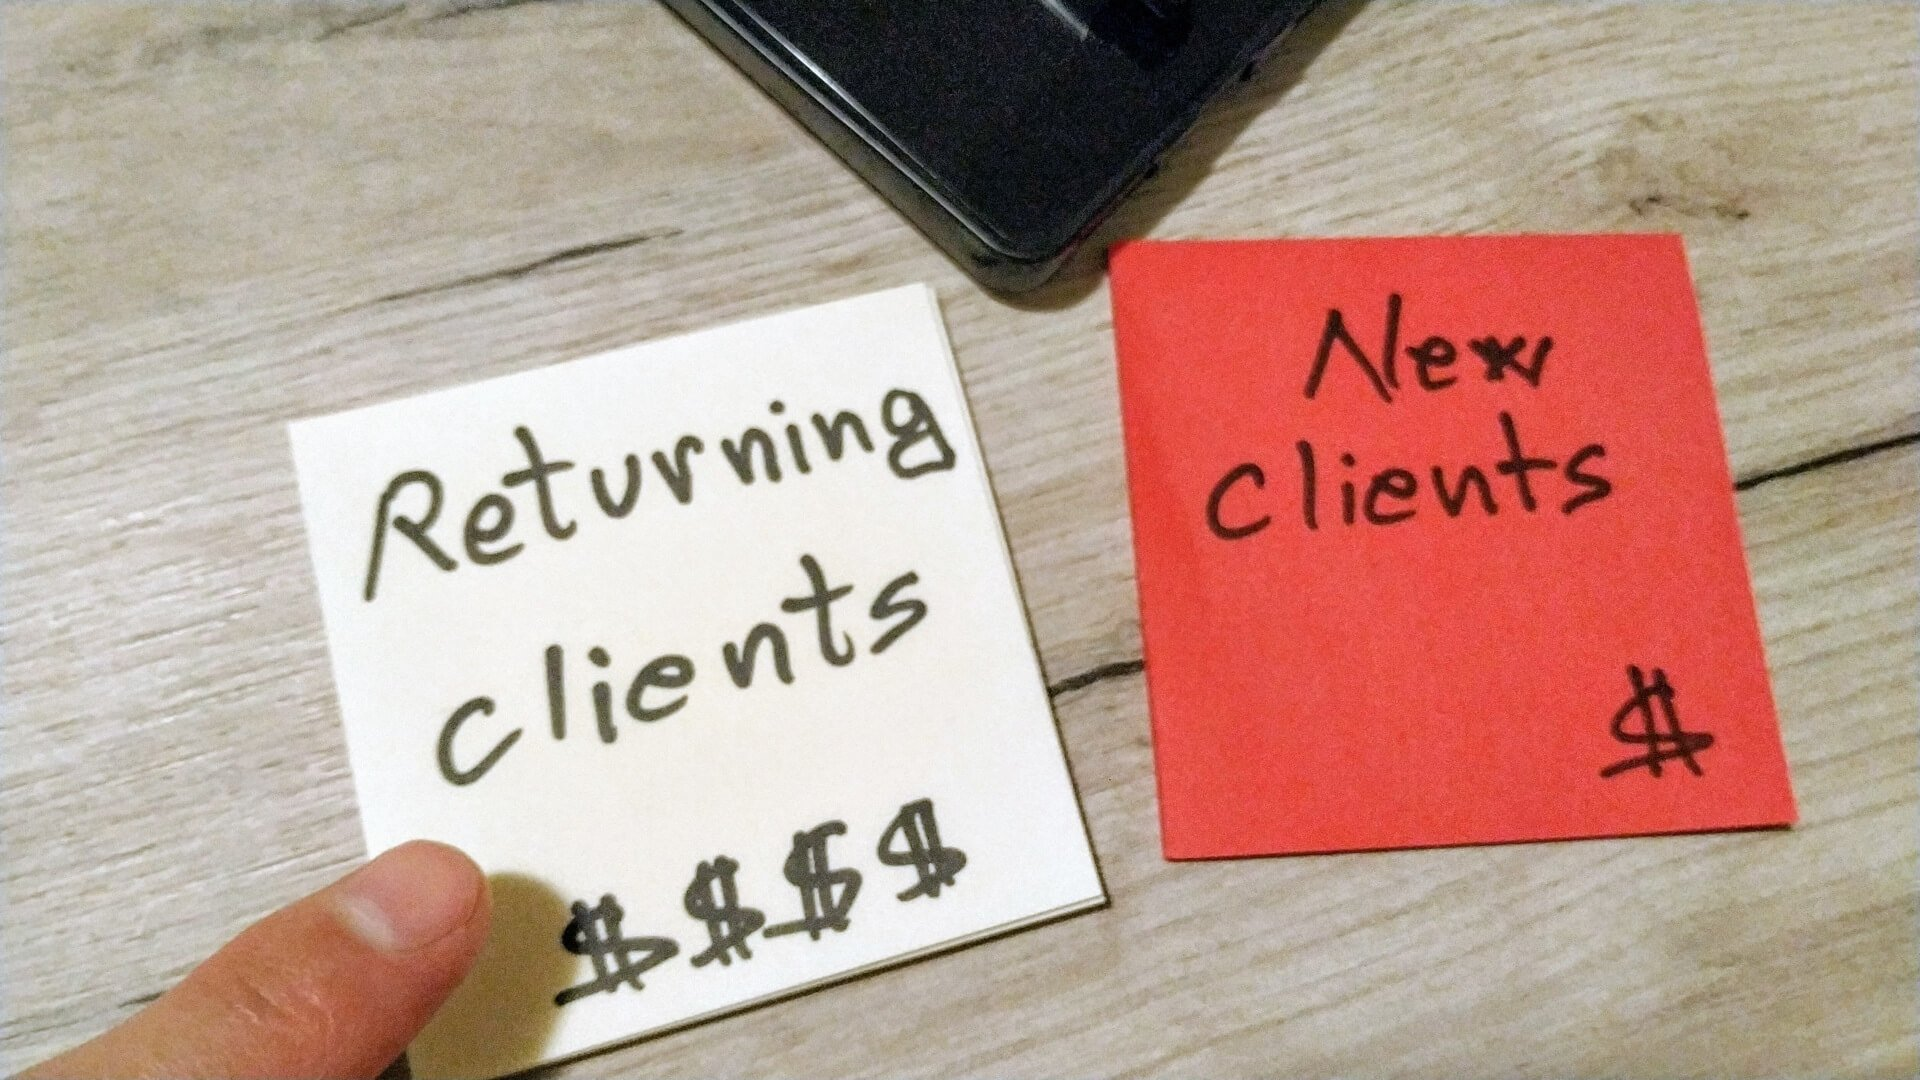 Returning vs new clients